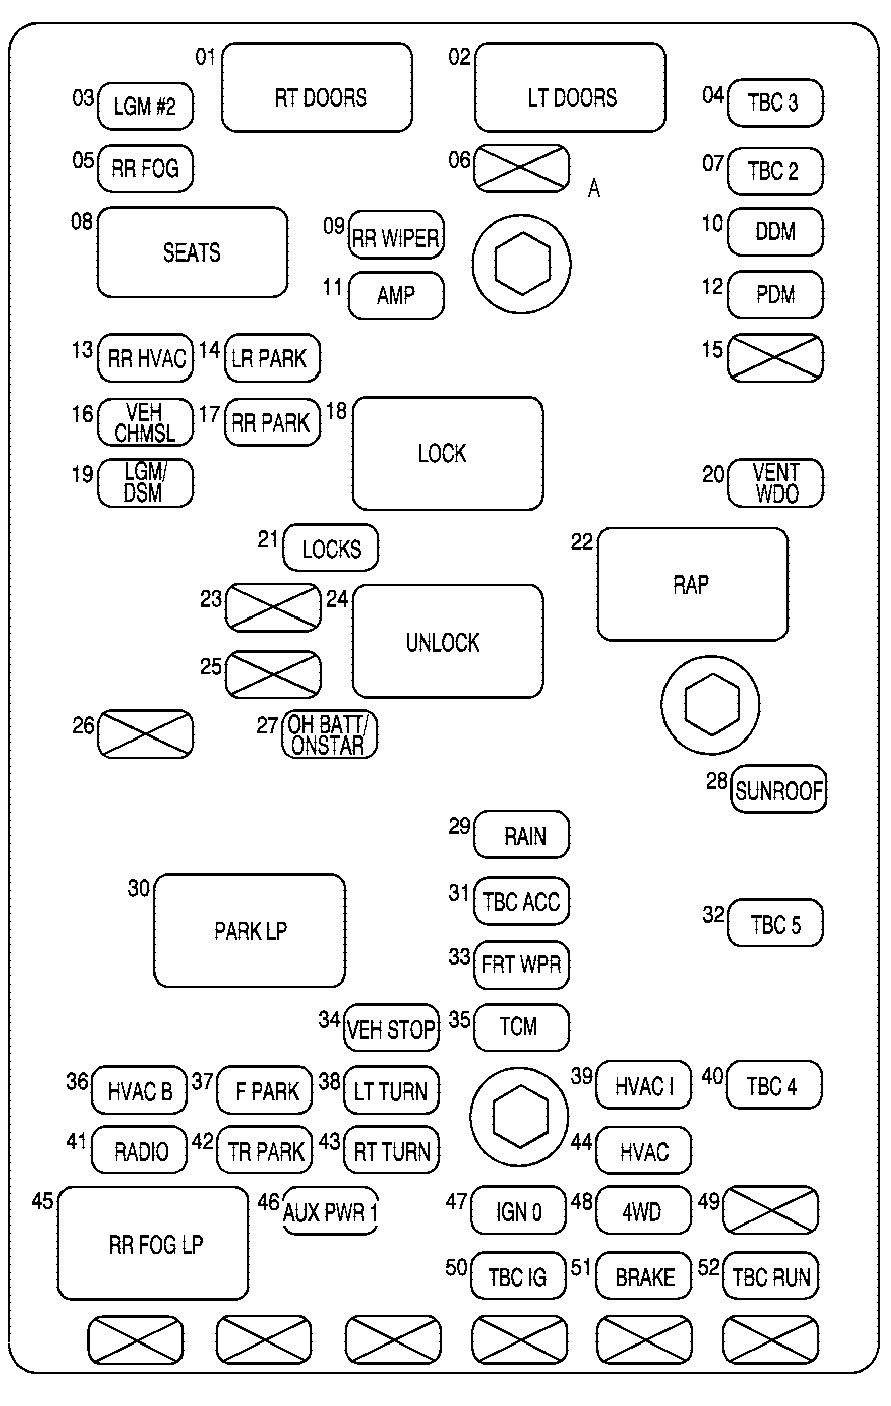 2006 Trailblazer Fuse Box Diagram - daily update wiring diagram 2003 chevy blazer fuse box diagram 111.destruction.bizdevcorp.co